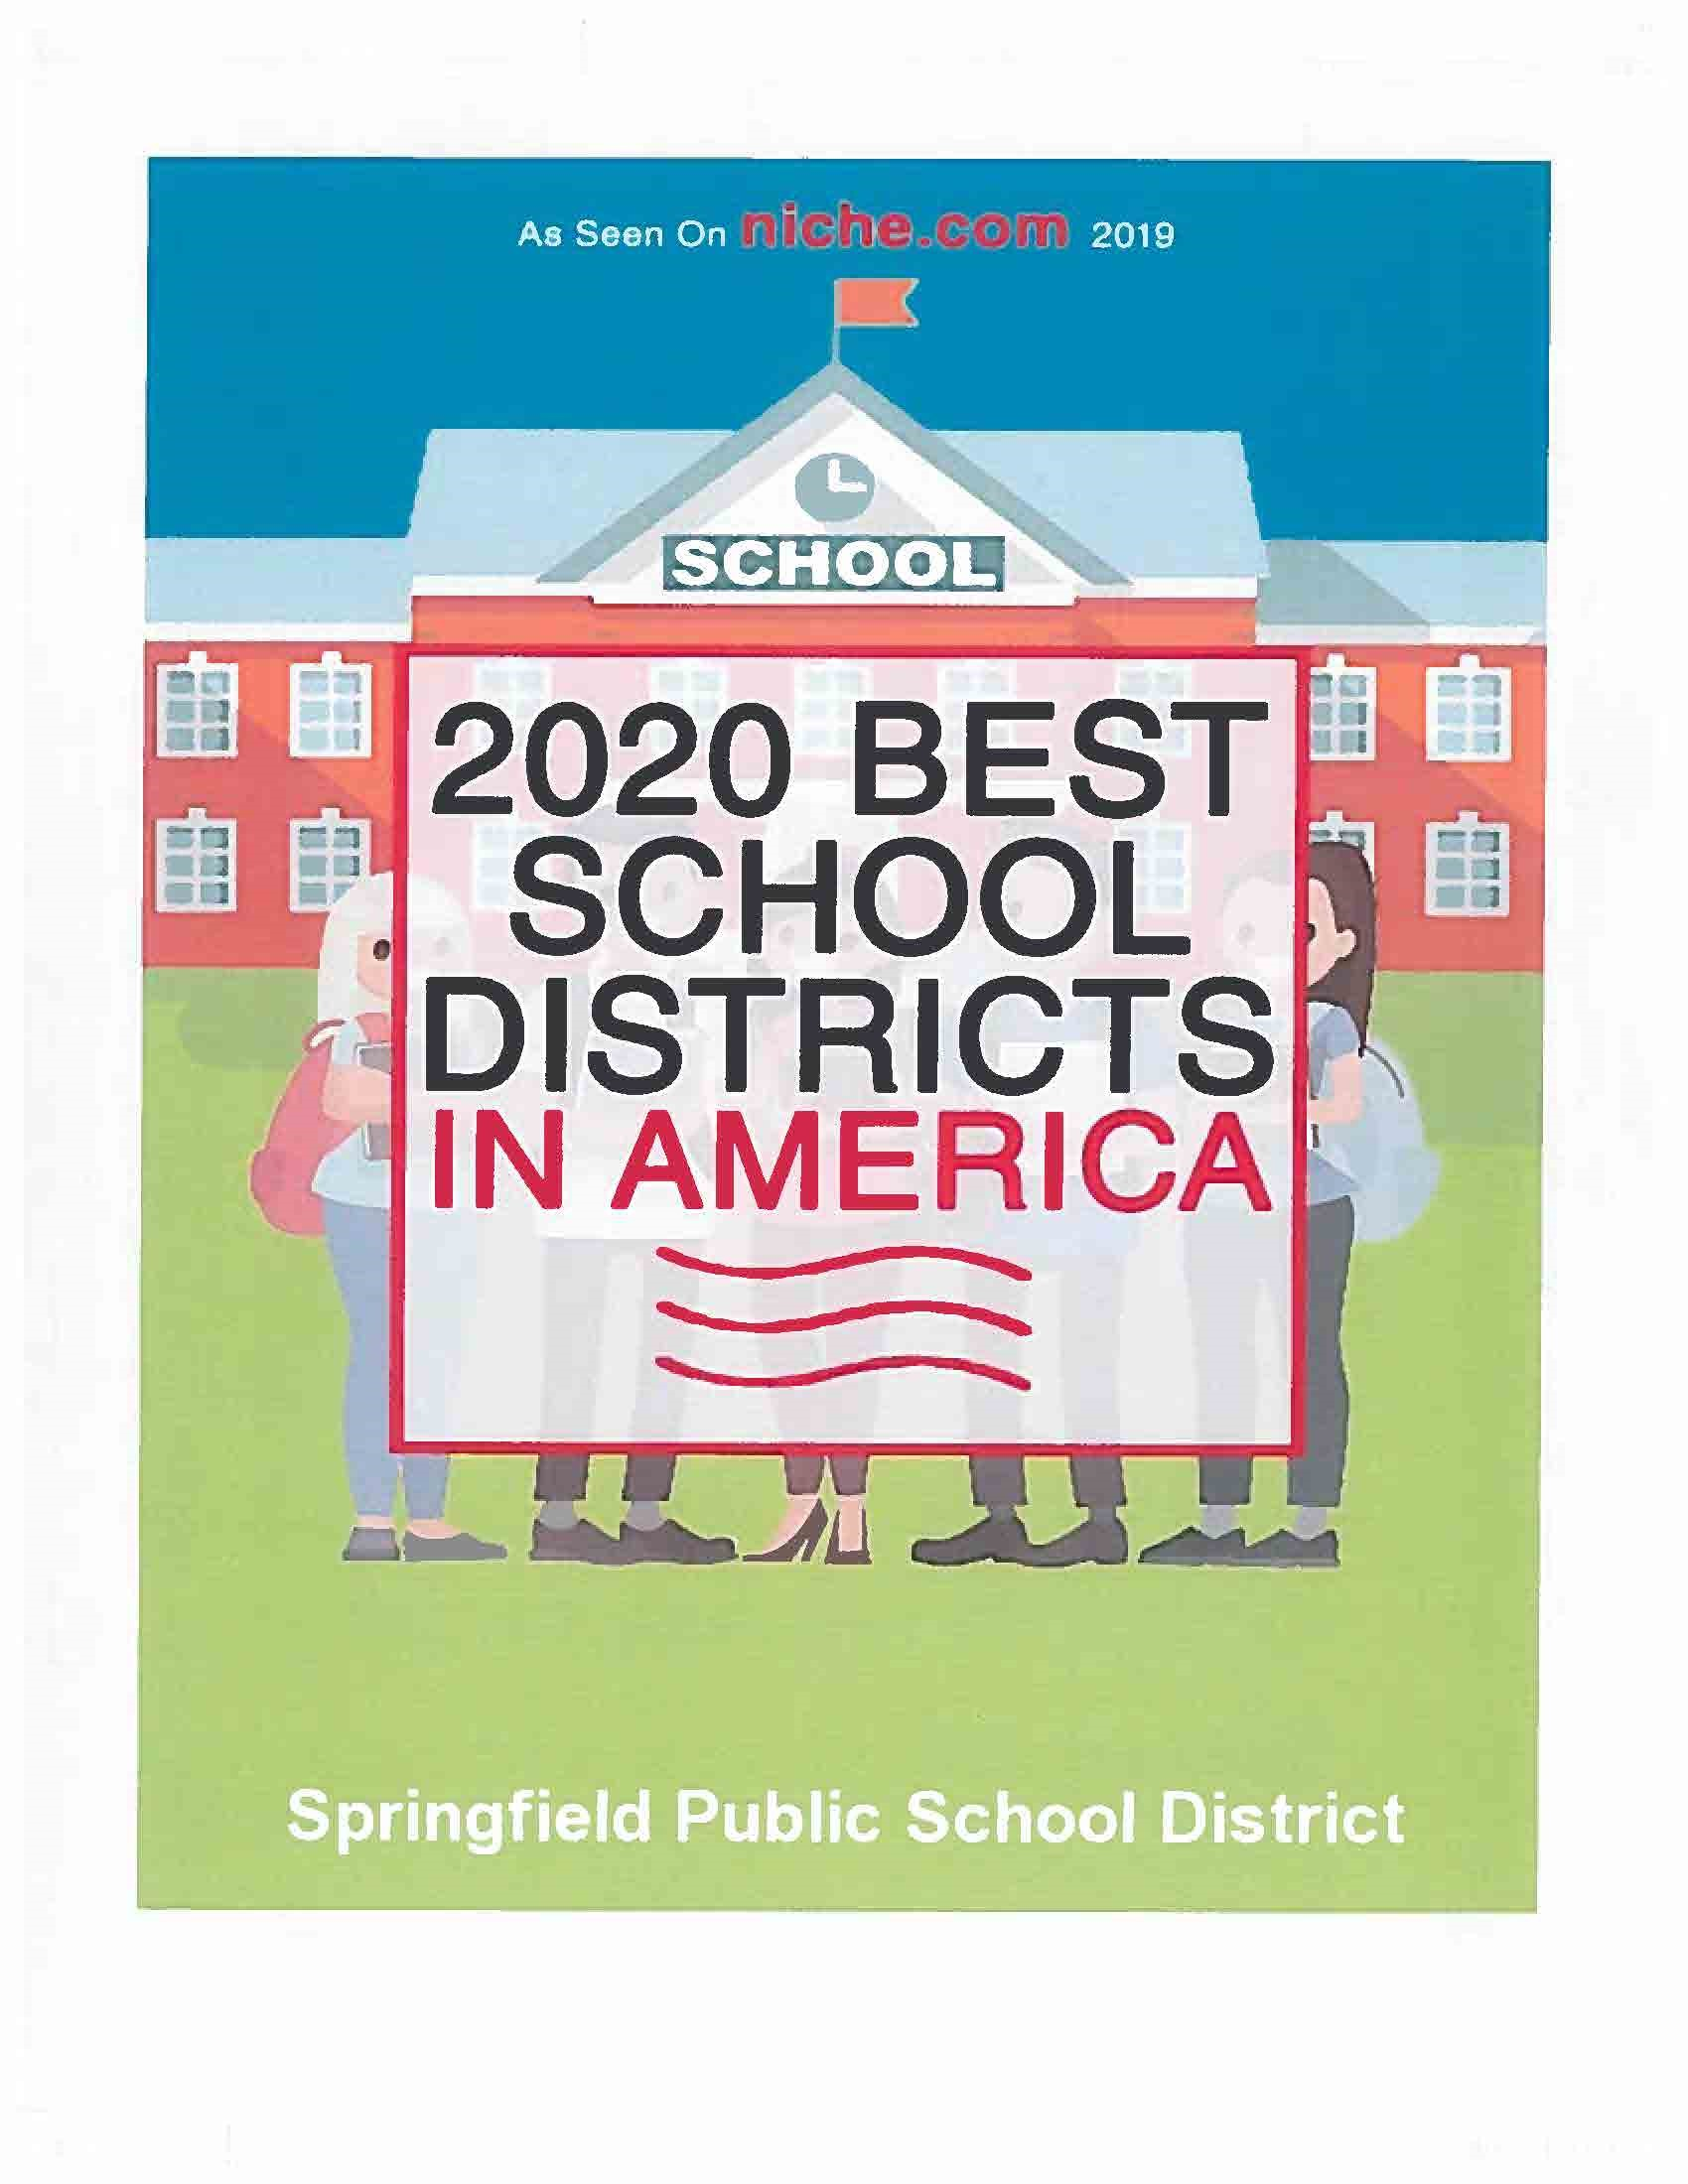 image of 2020 best school district in america: springfield public schools